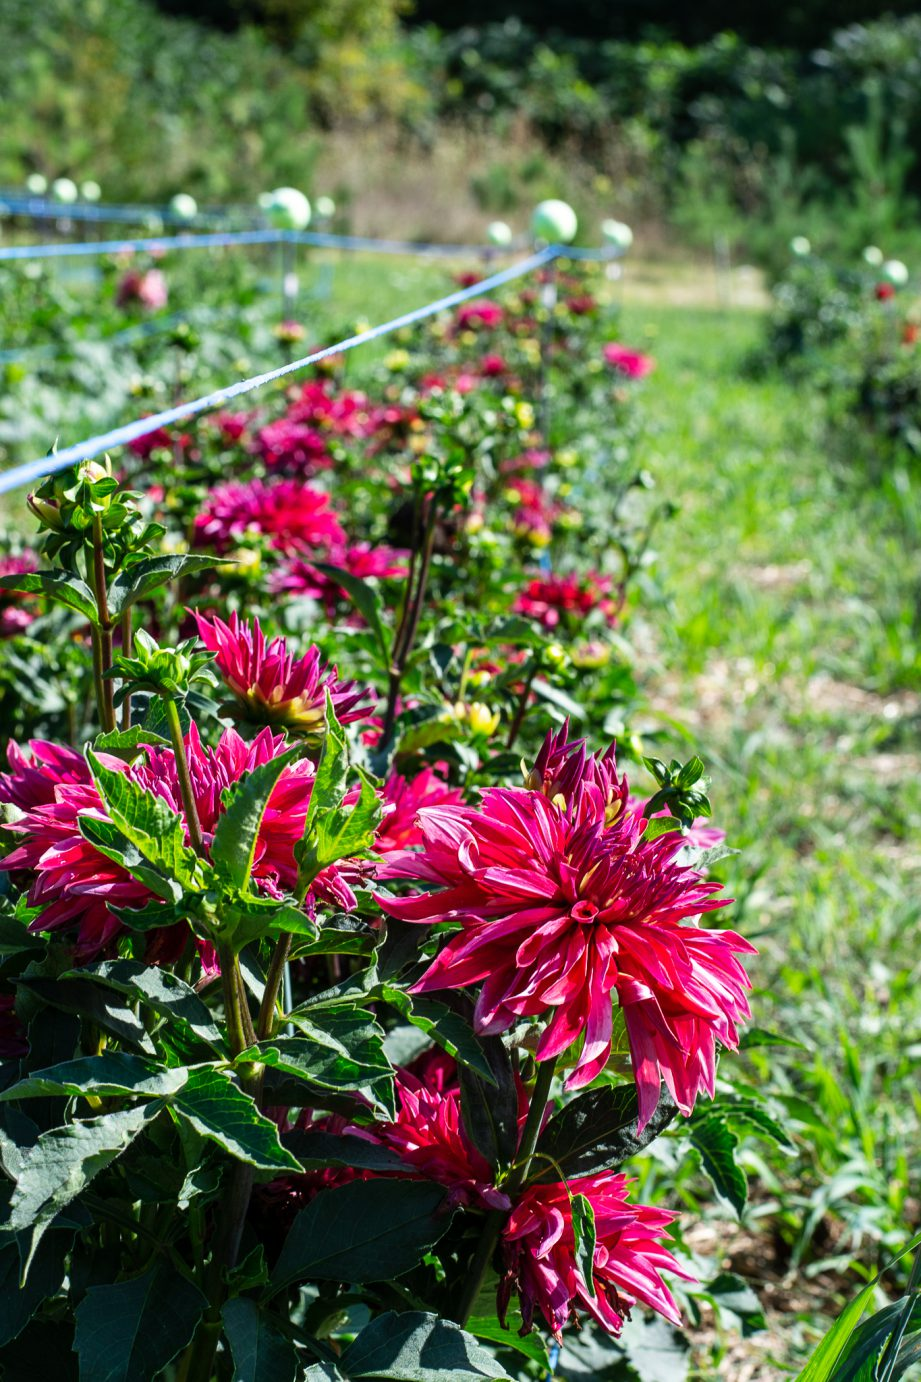 Pink flowers grown in a row at Dahlia May Flower Farm.